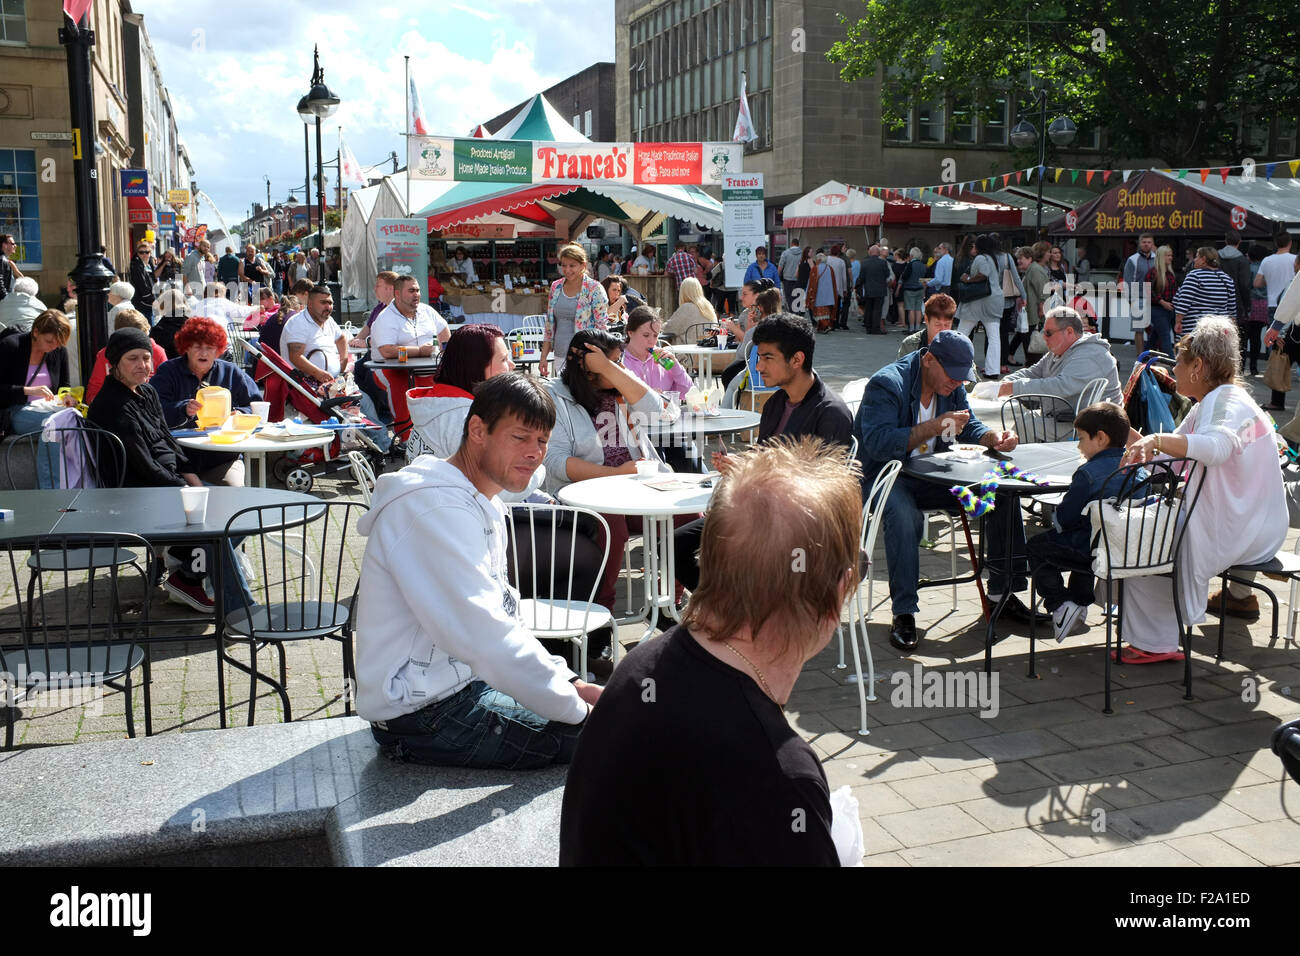 People sat in the sunshine at The Annual Bolton Food Festival on Victoria Square Bolton Town Centre, Lancashire, - Stock Image